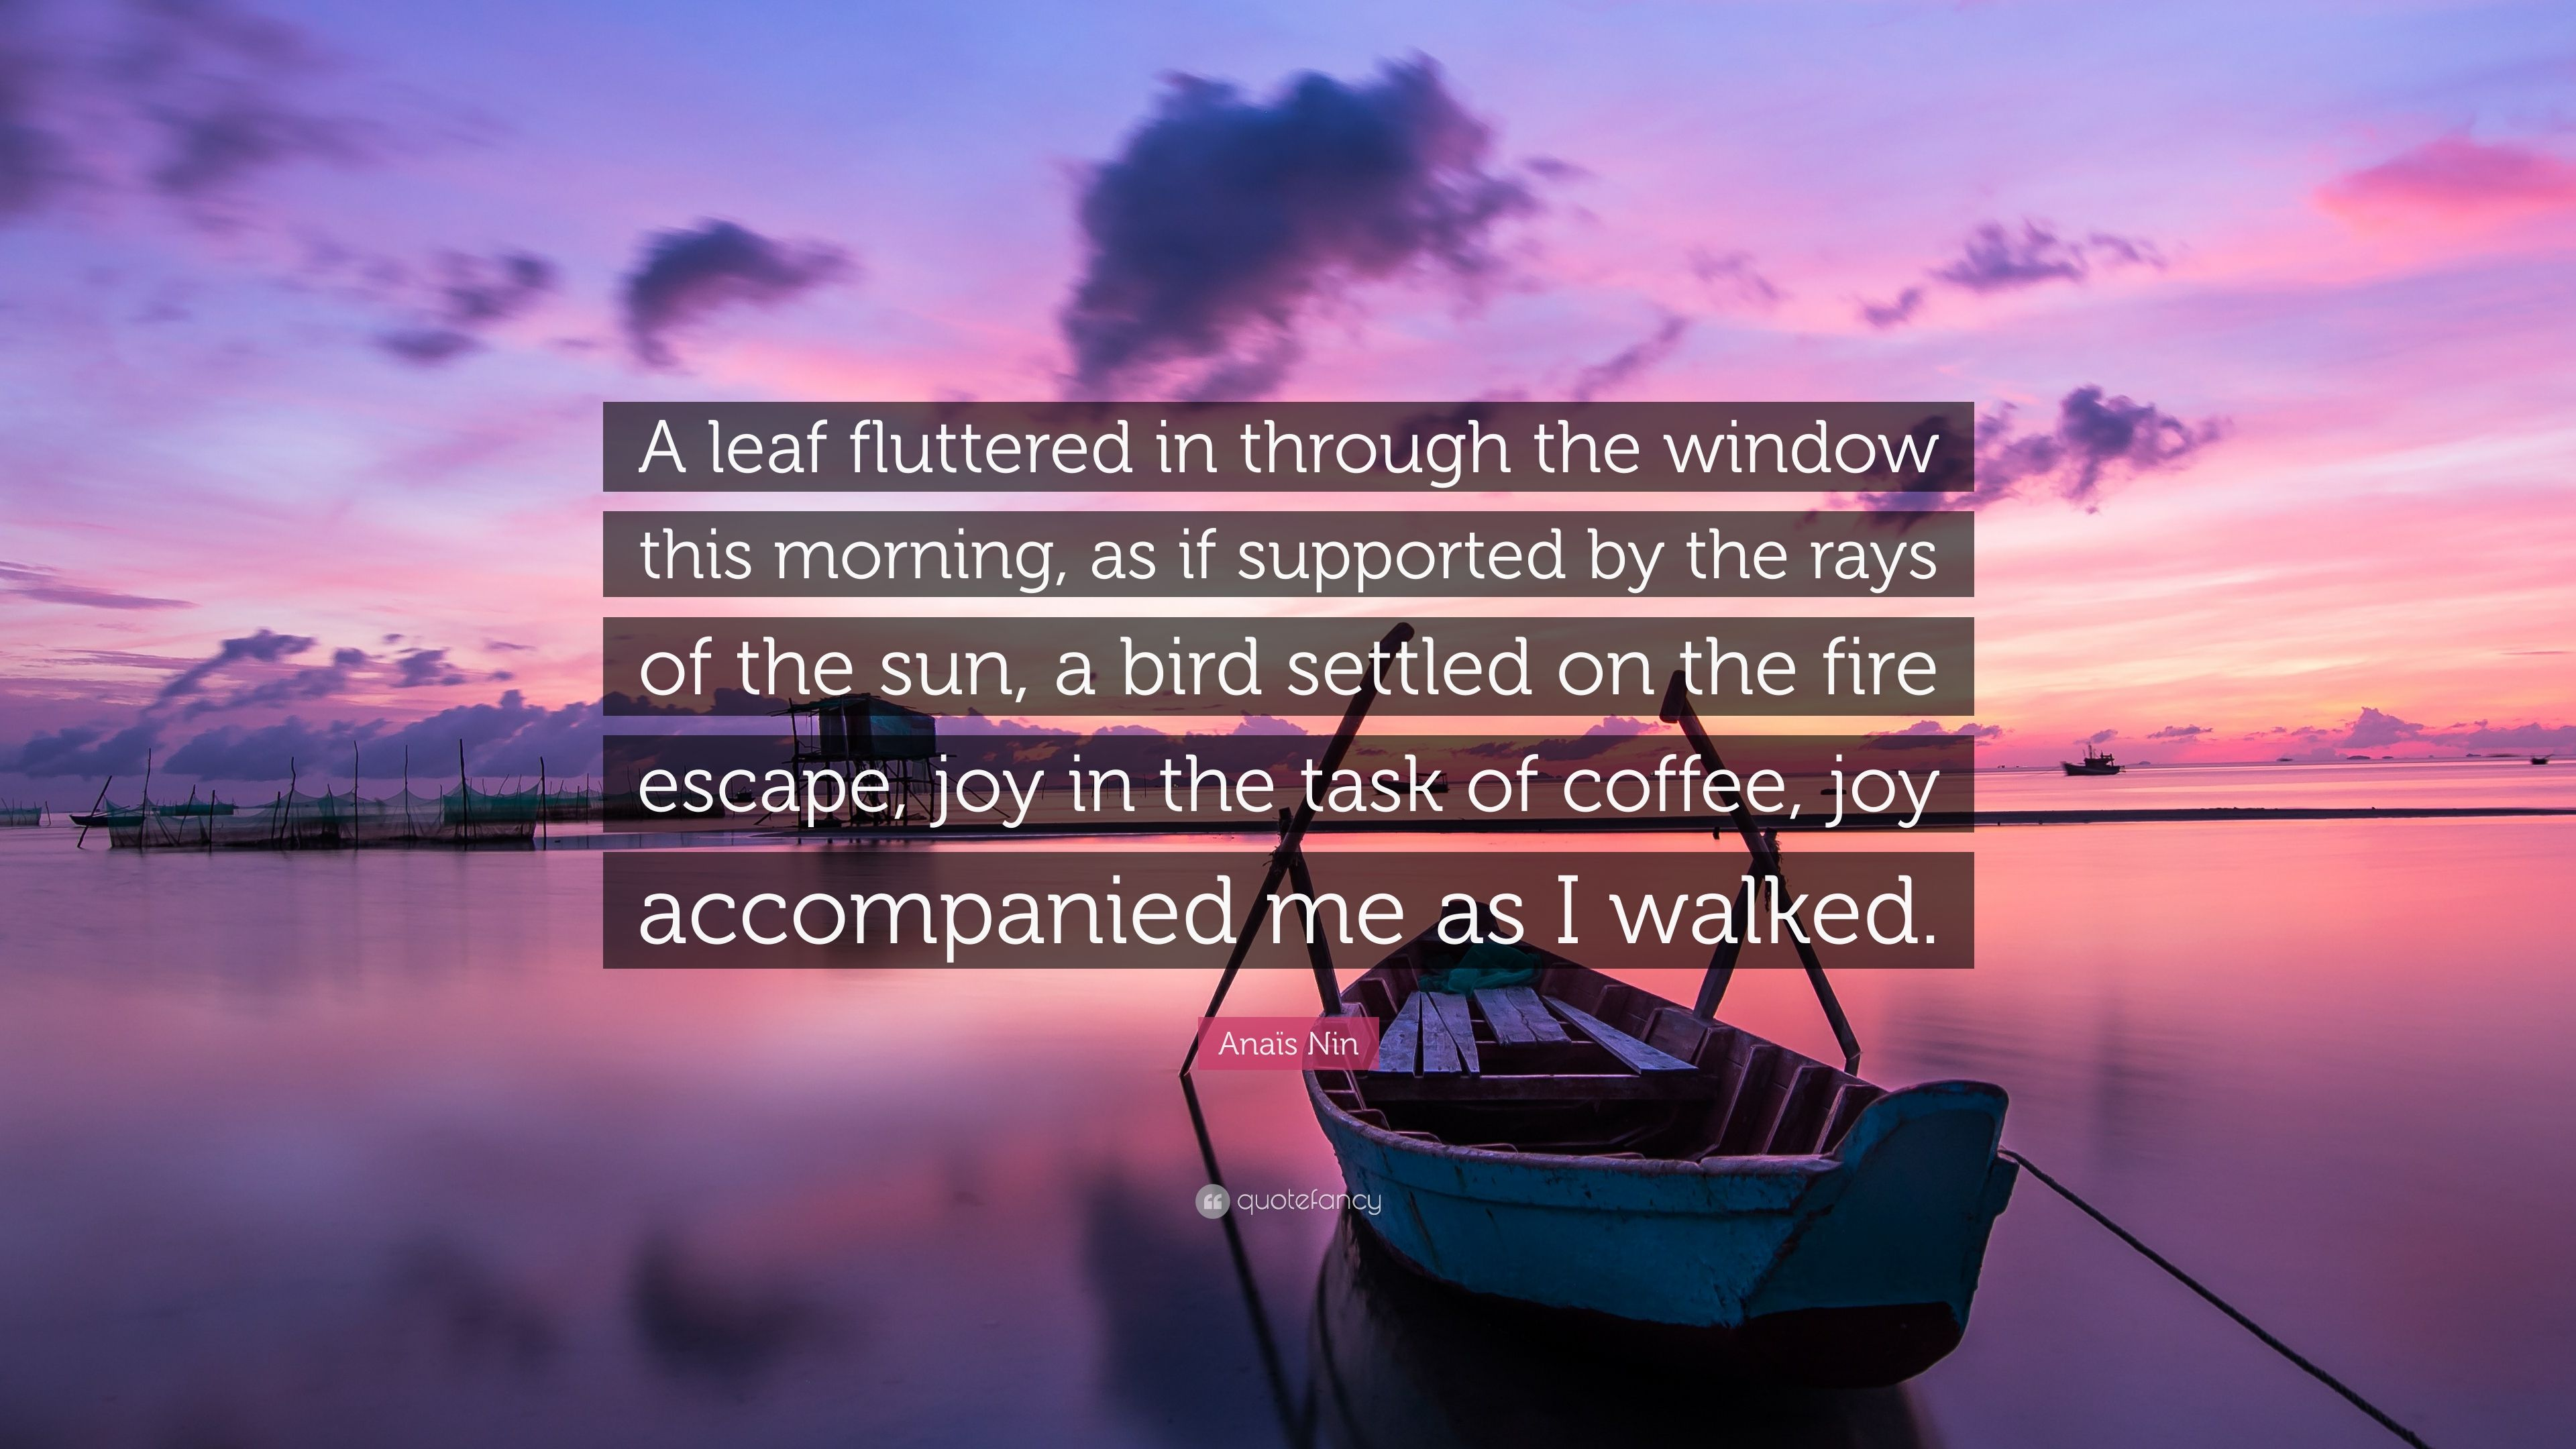 Charming Anaïs Nin Quote: U201cA Leaf Fluttered In Through The Window This Morning, As